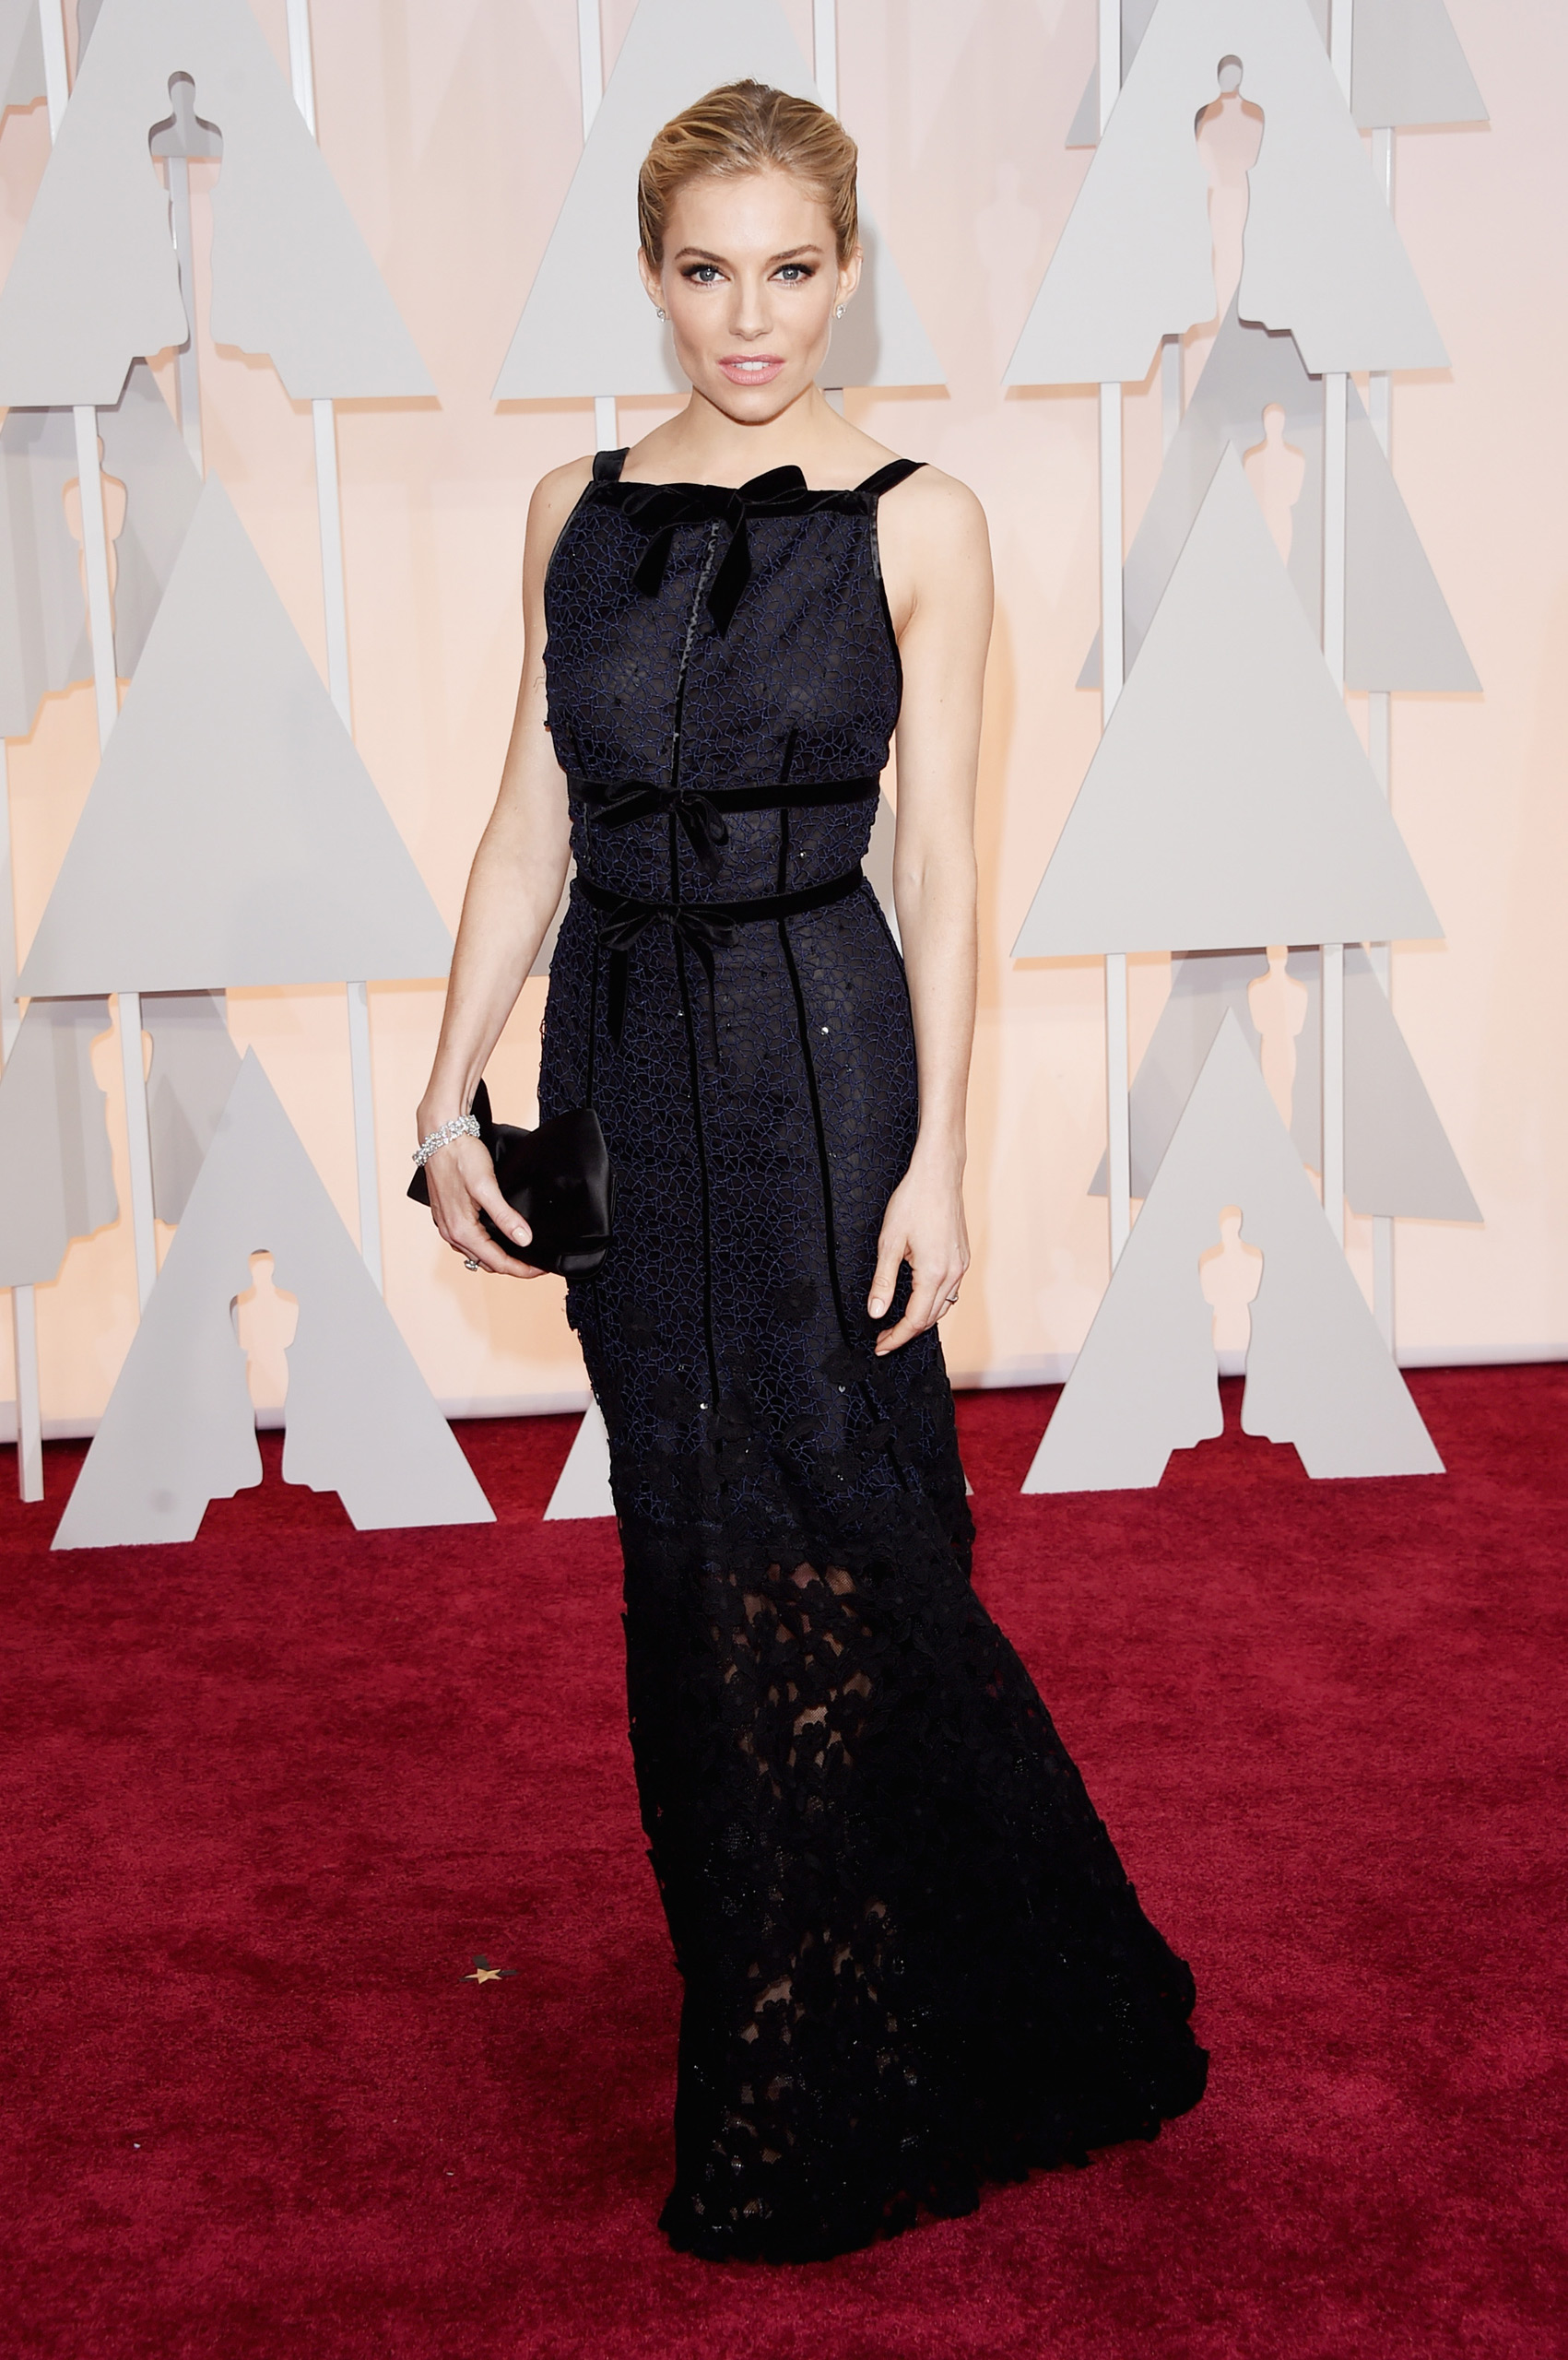 Sienna Miller attends the 87th Annual Academy Awards on Feb. 22, 2015 in Hollywood, Calif.